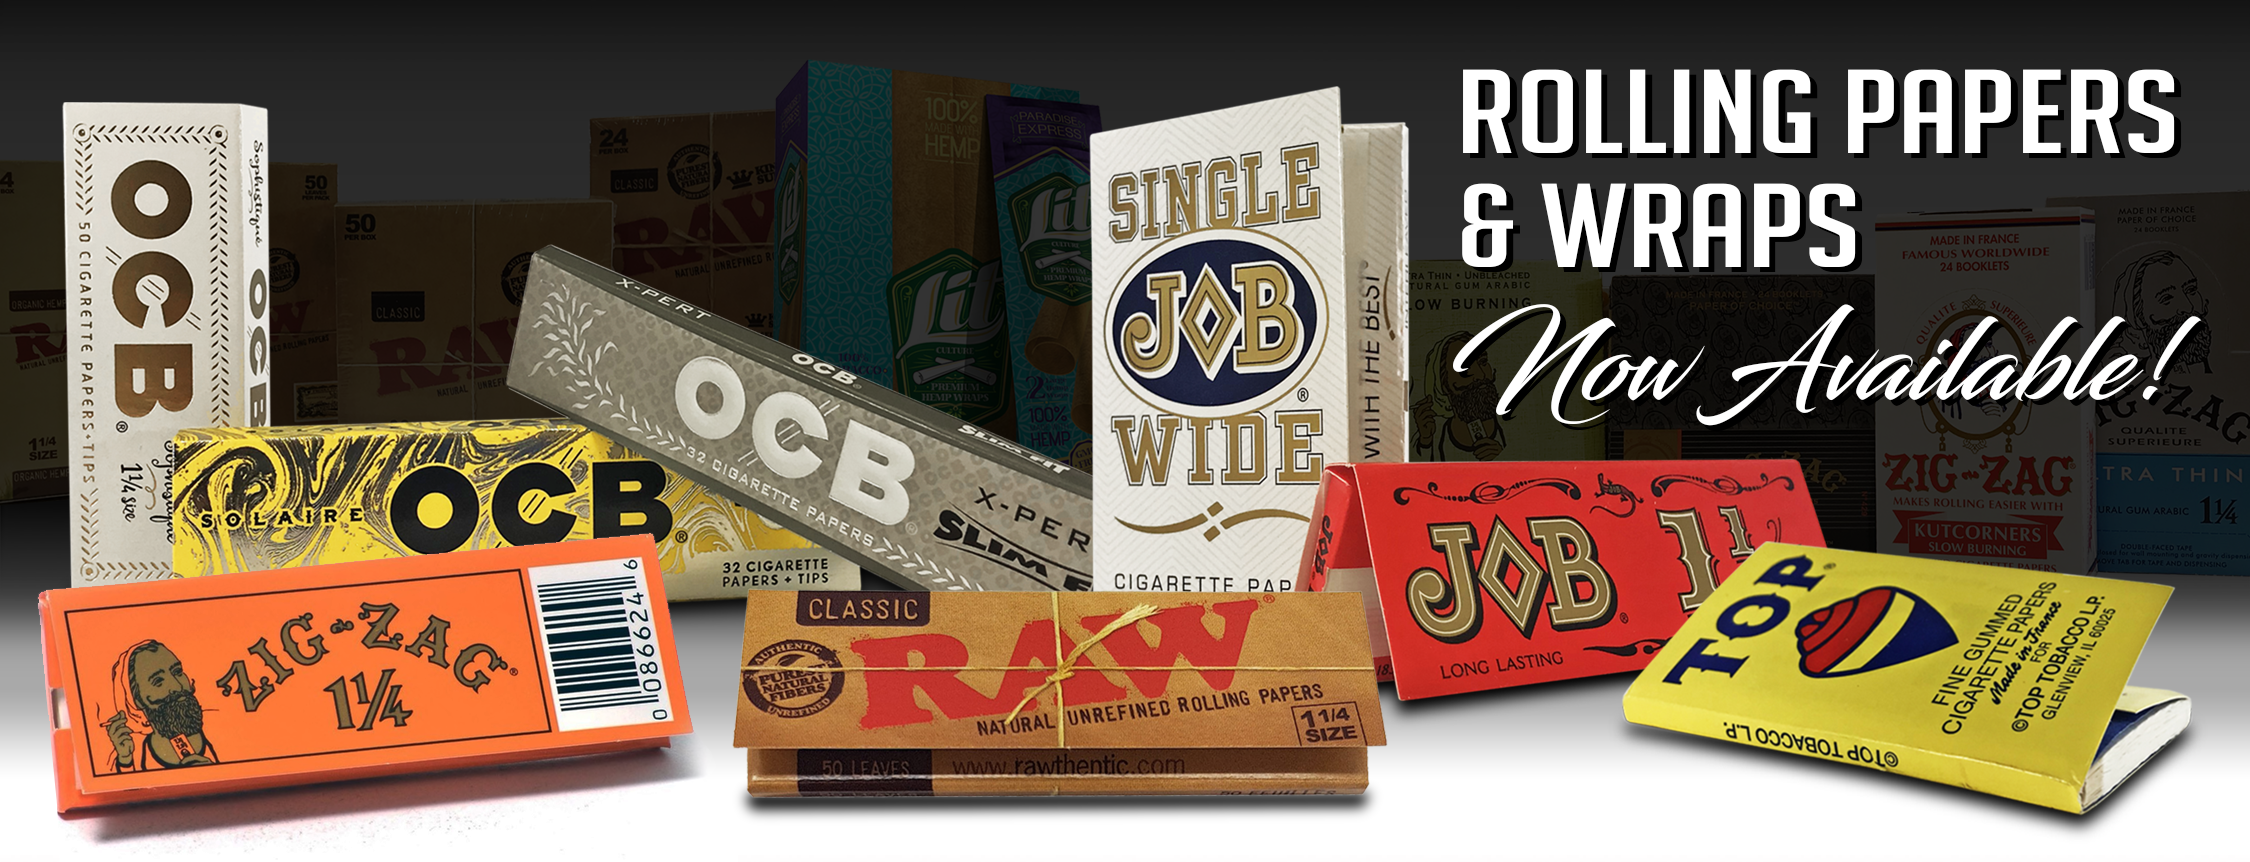 Rolling Papers & Wraps